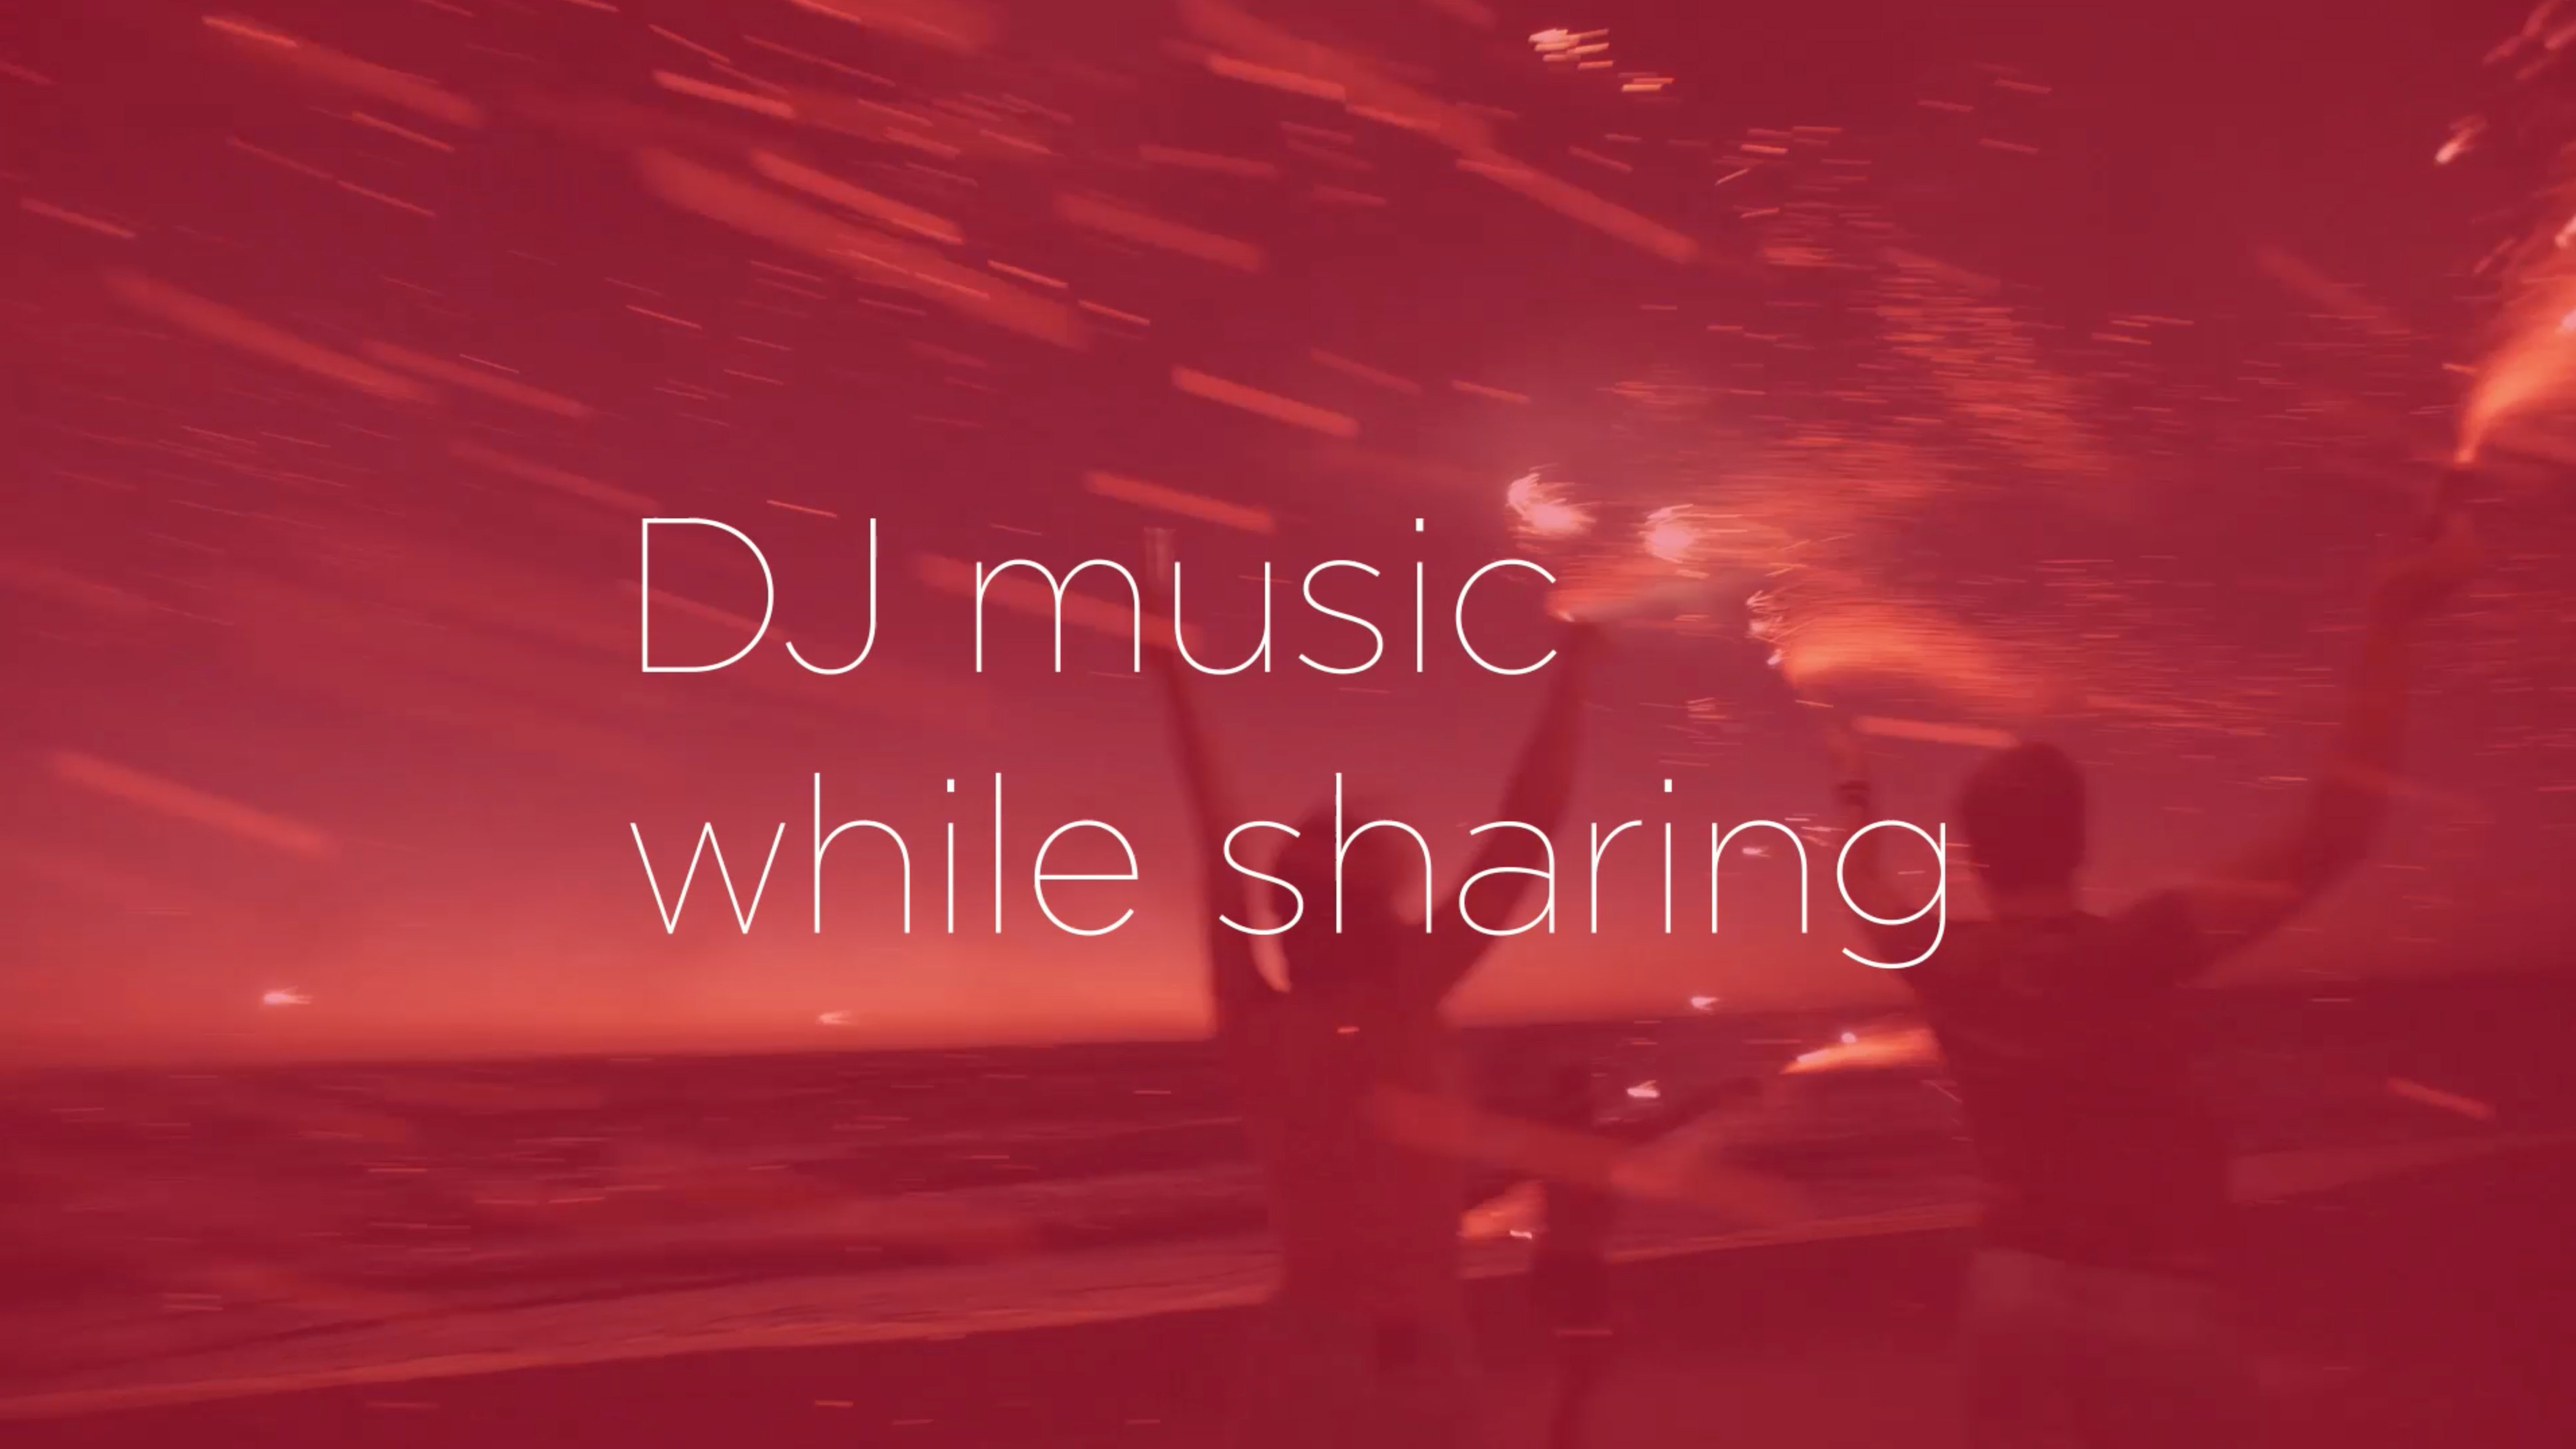 """Friends hanging out on a beach with type imposed over image saying """"DJ music while sharing"""""""